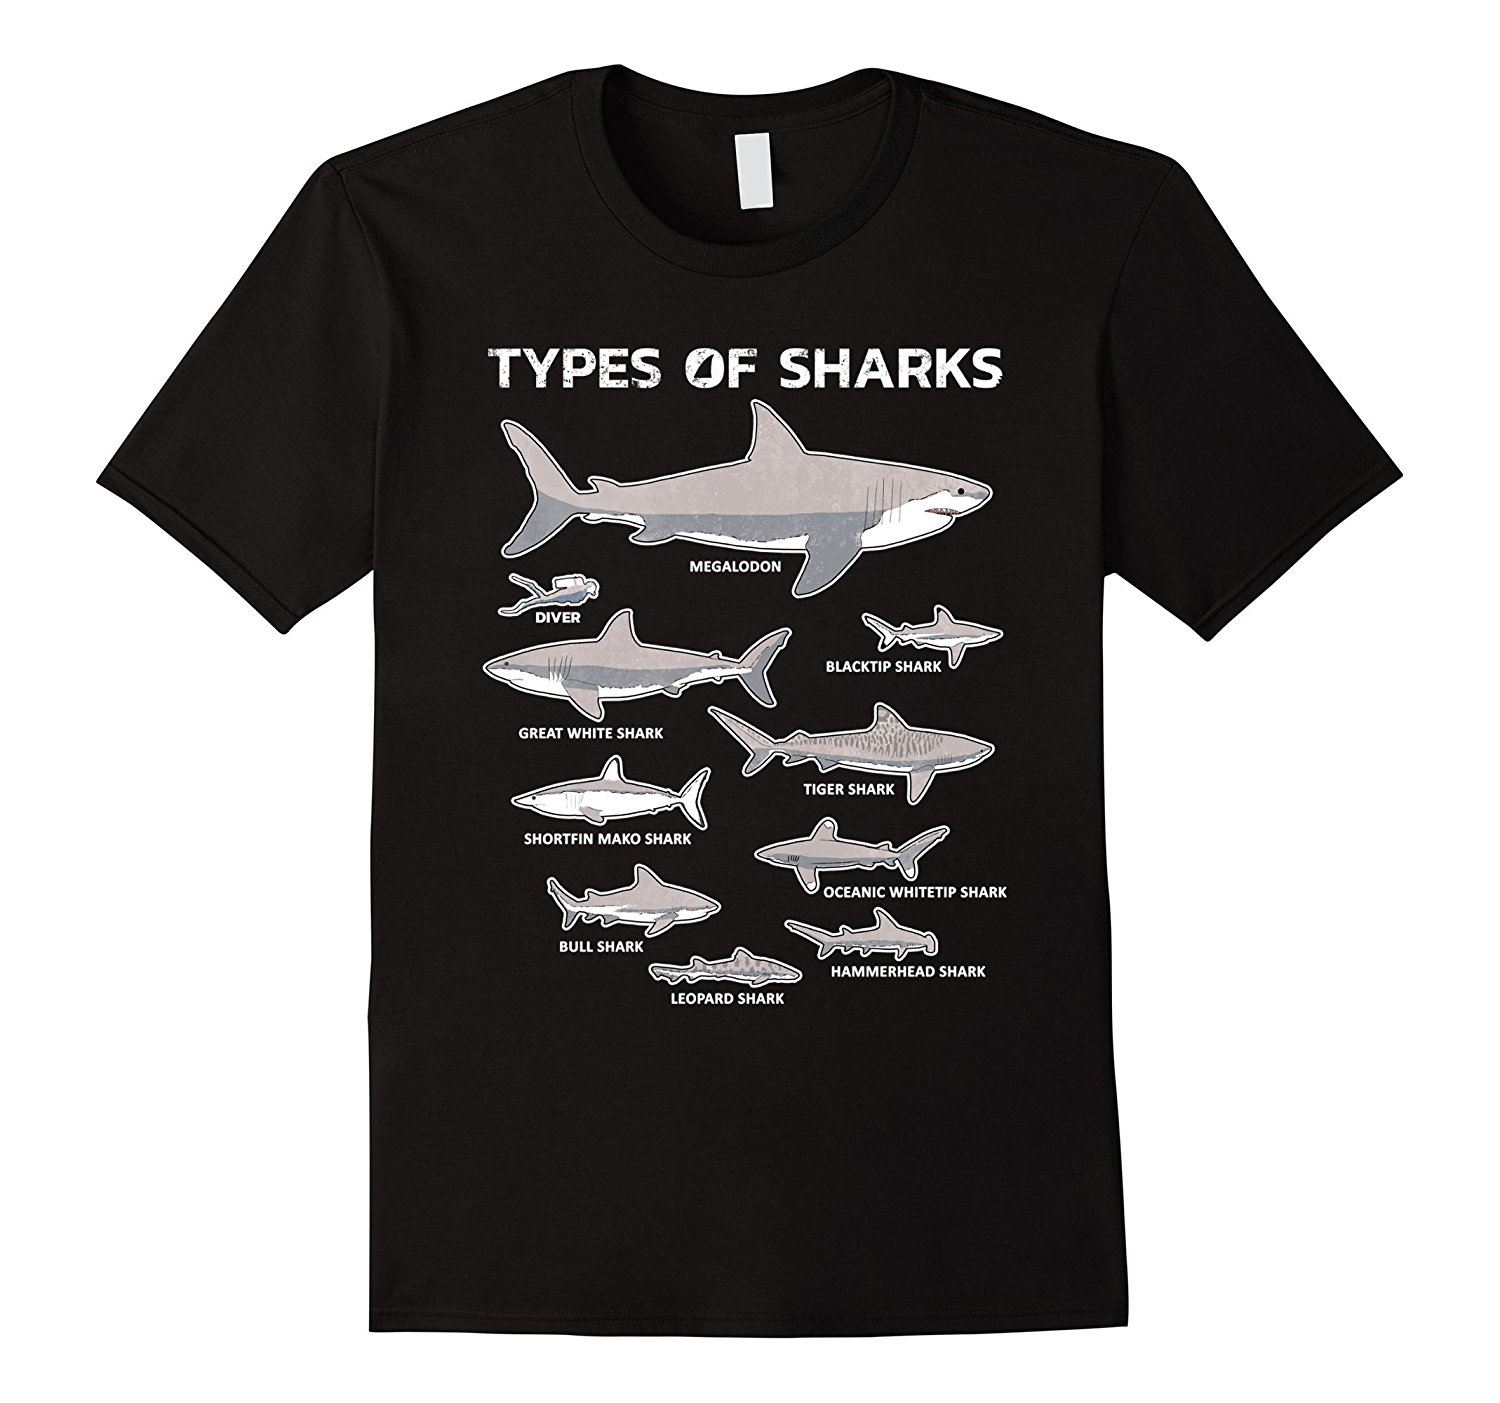 9 Types Of Sharks T-Shirt Educational Academic Ocean Tee Mens T Shirts 2018 FashionMens 100% Cotton Short Sleeve Print